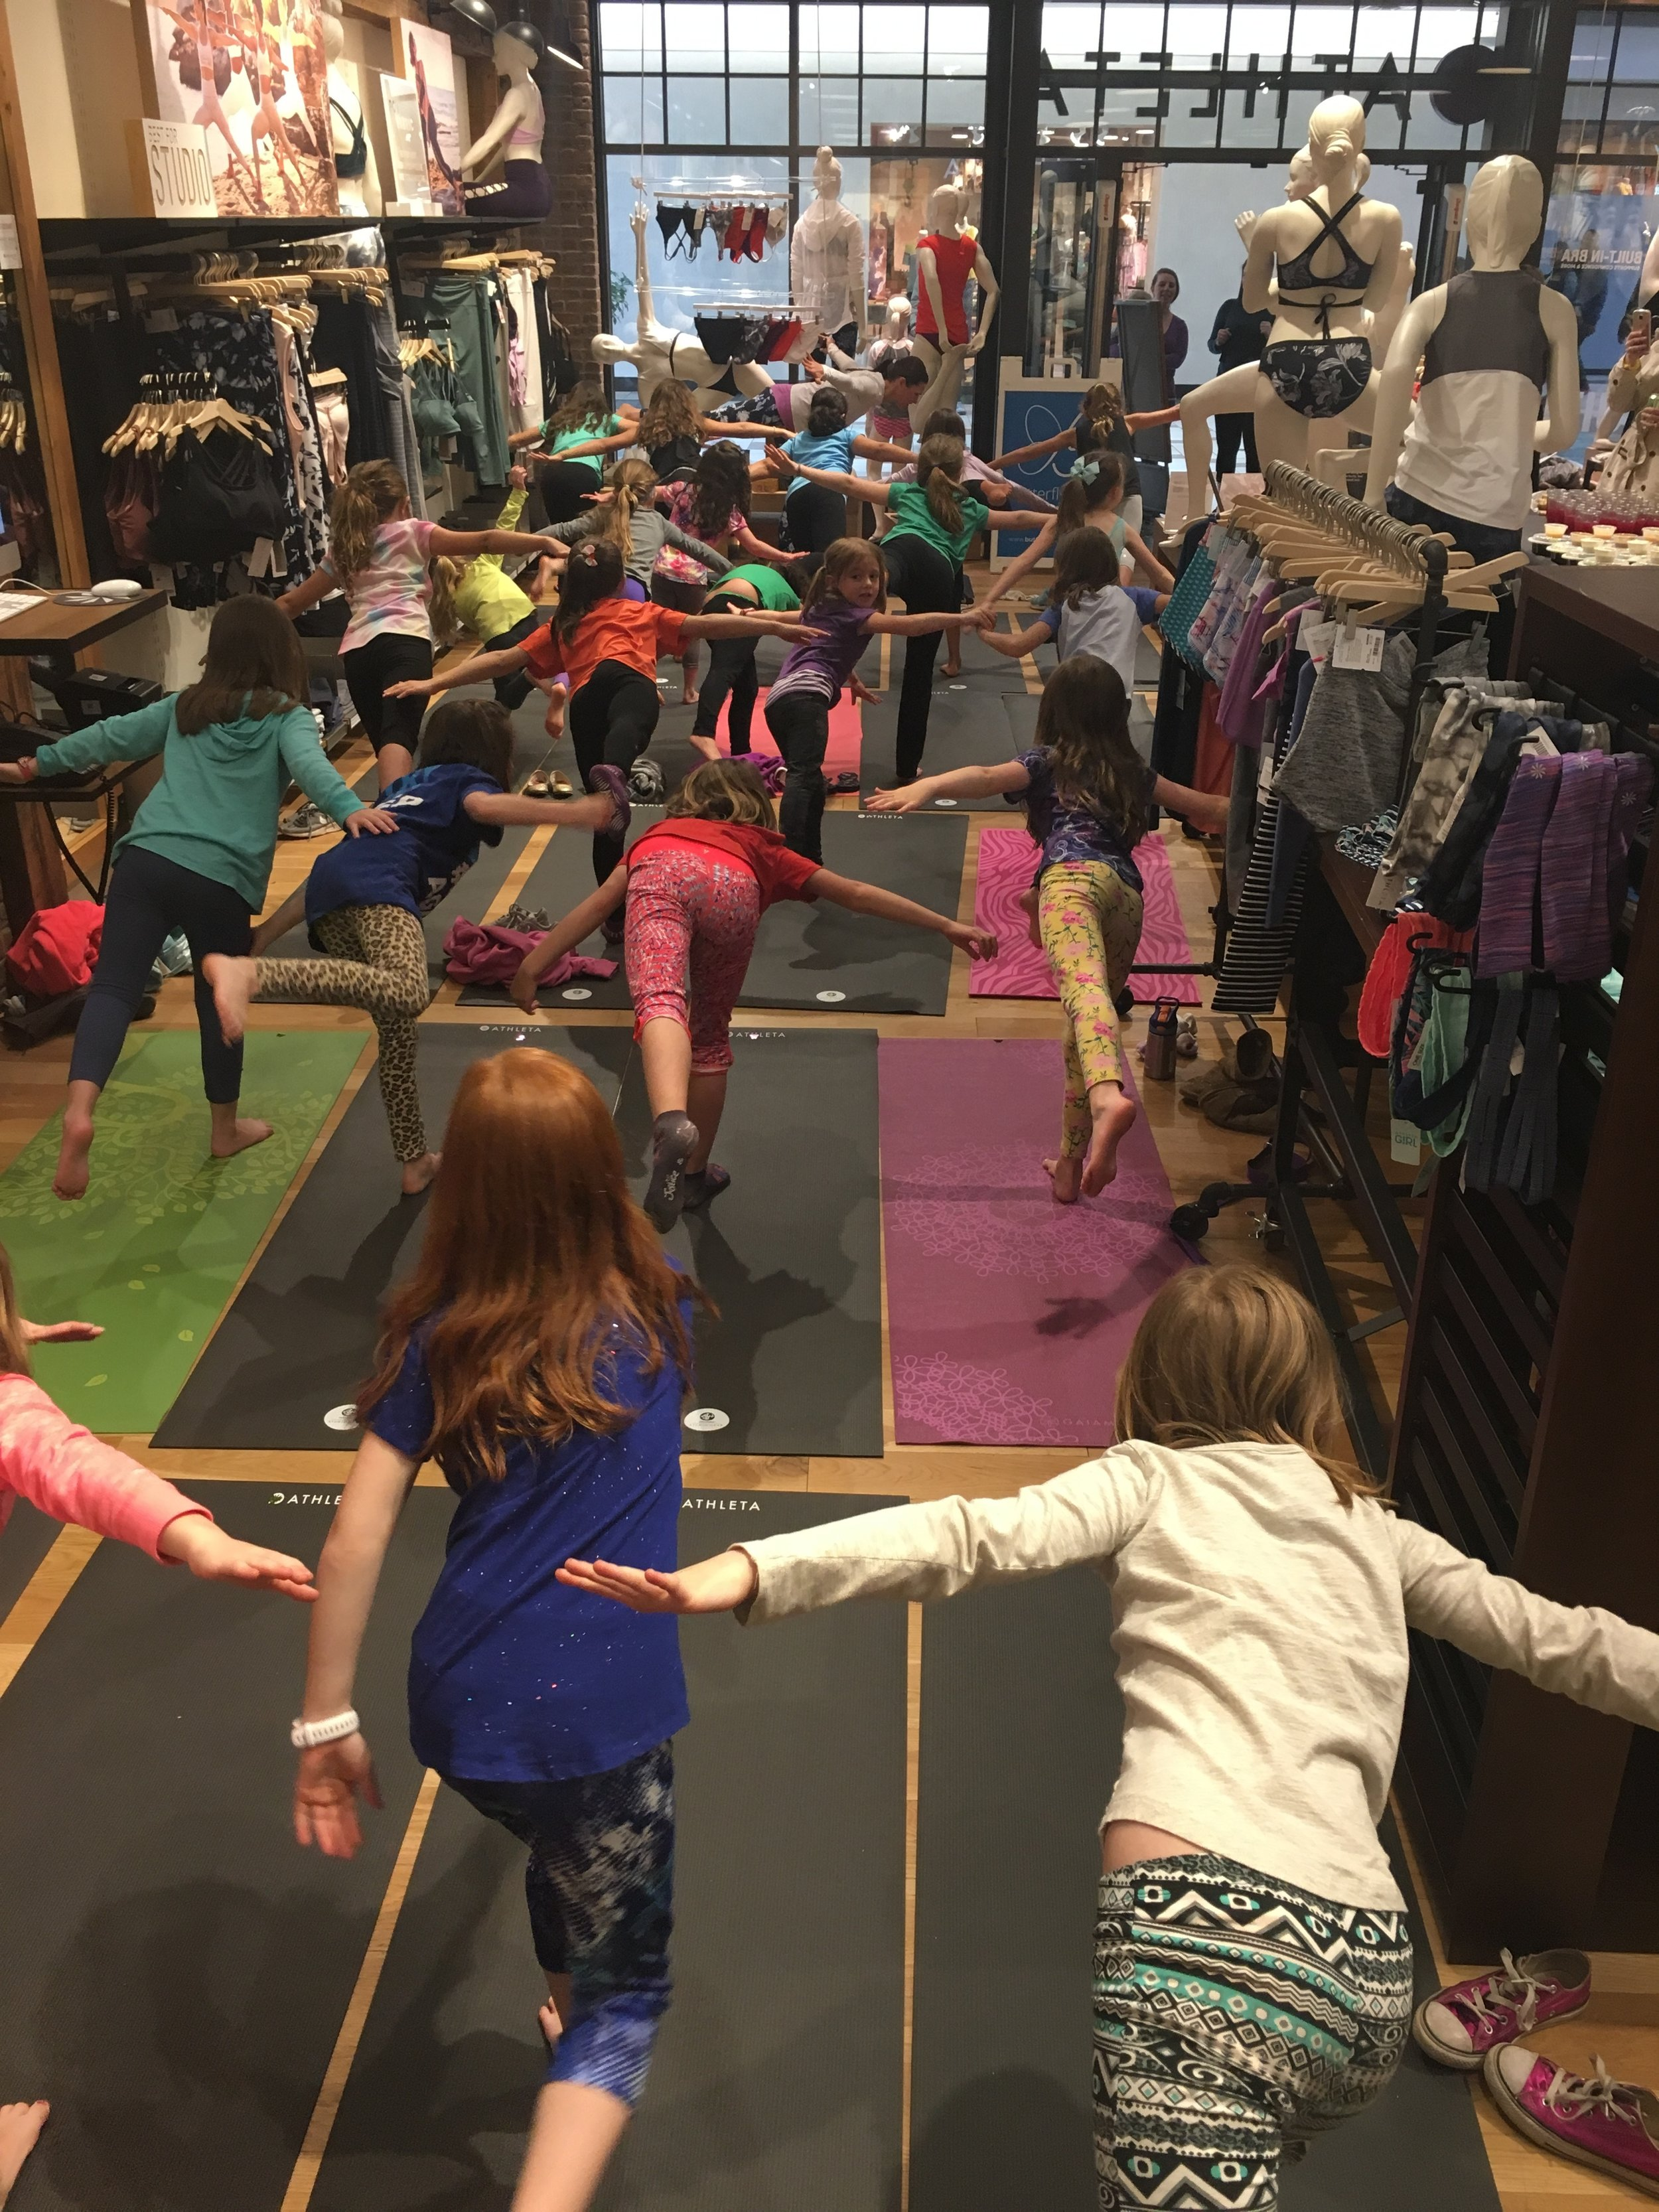 Butterfly Kids Yoga celebrating the new Athleta Girl collection.A packed house!